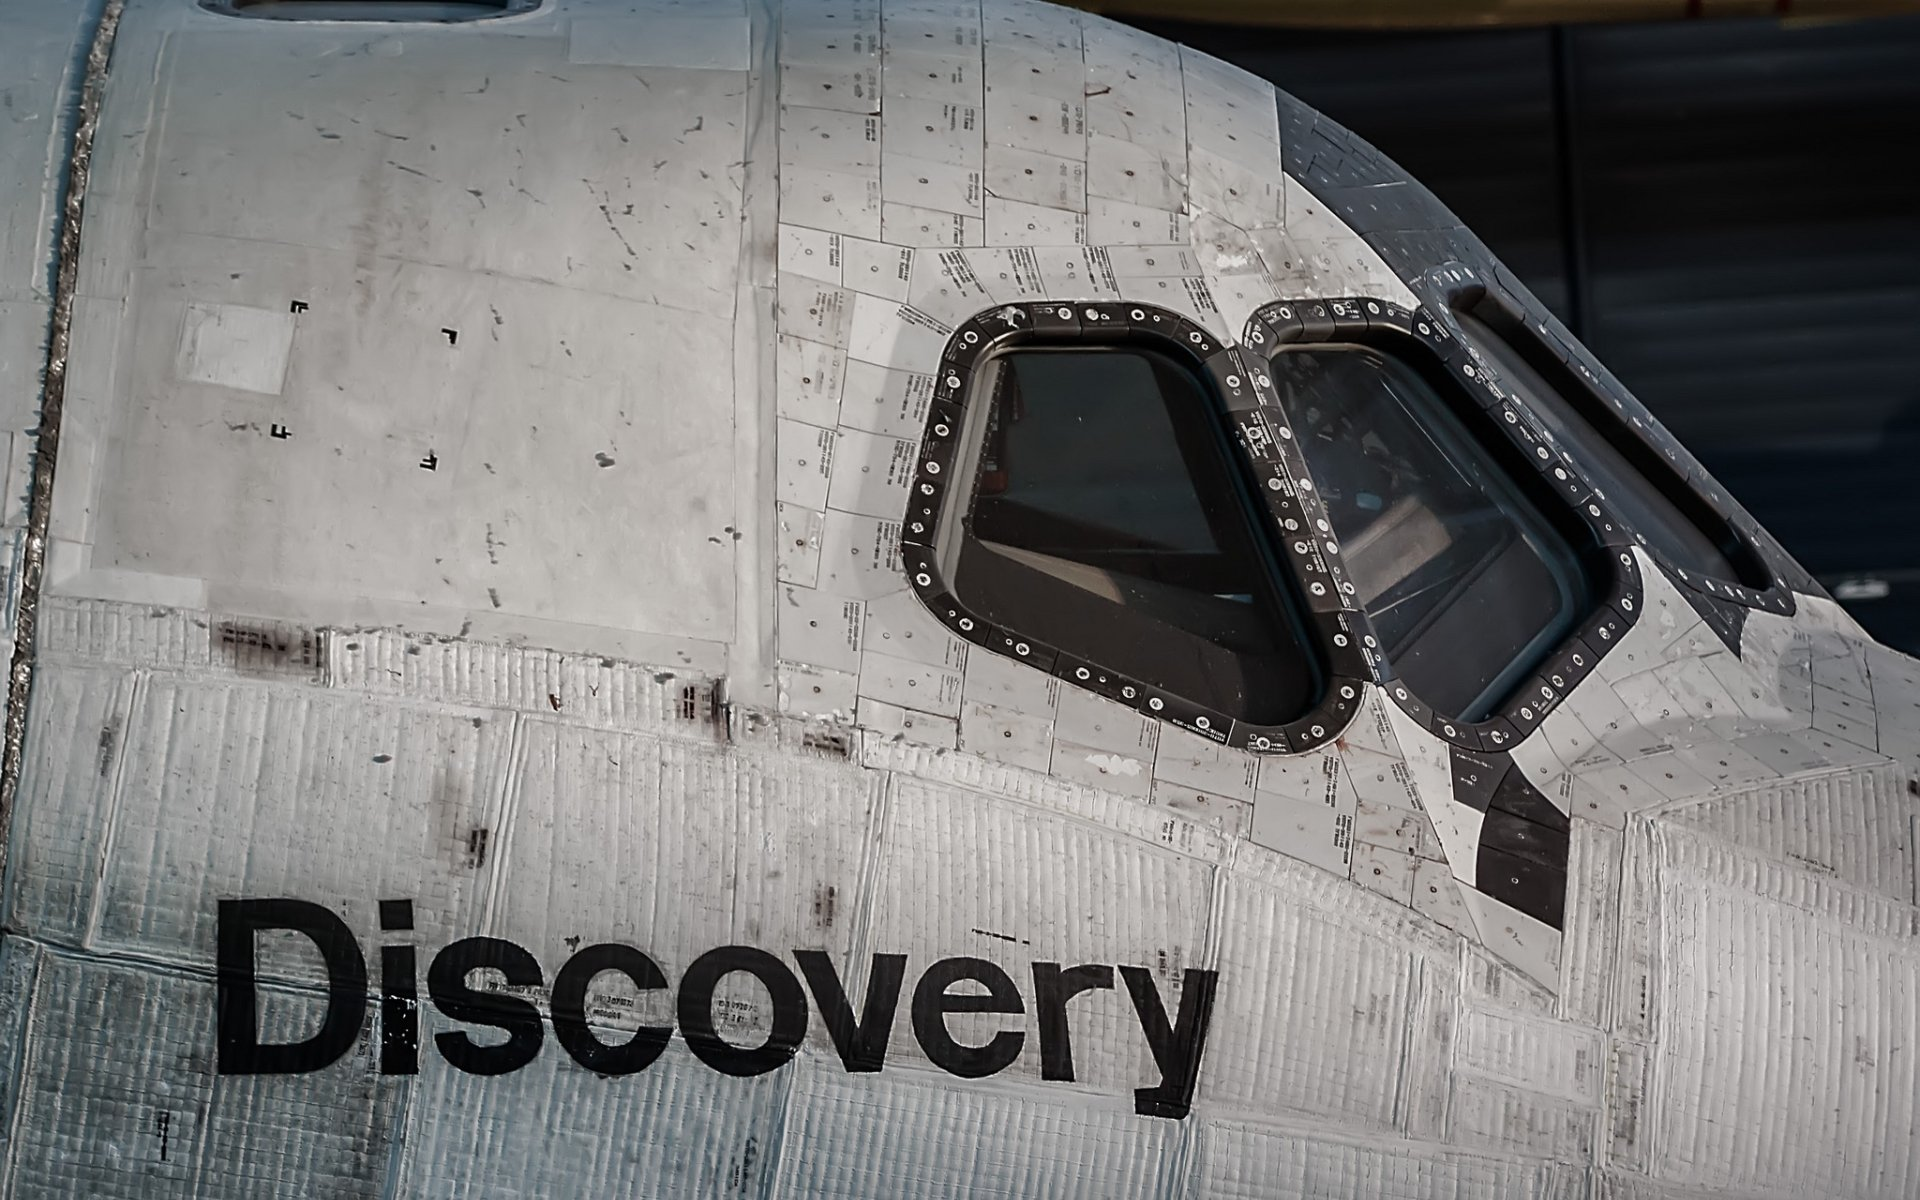 Awesome Space Shuttle Discovery free wallpaper ID:419711 for hd 1920x1200 PC